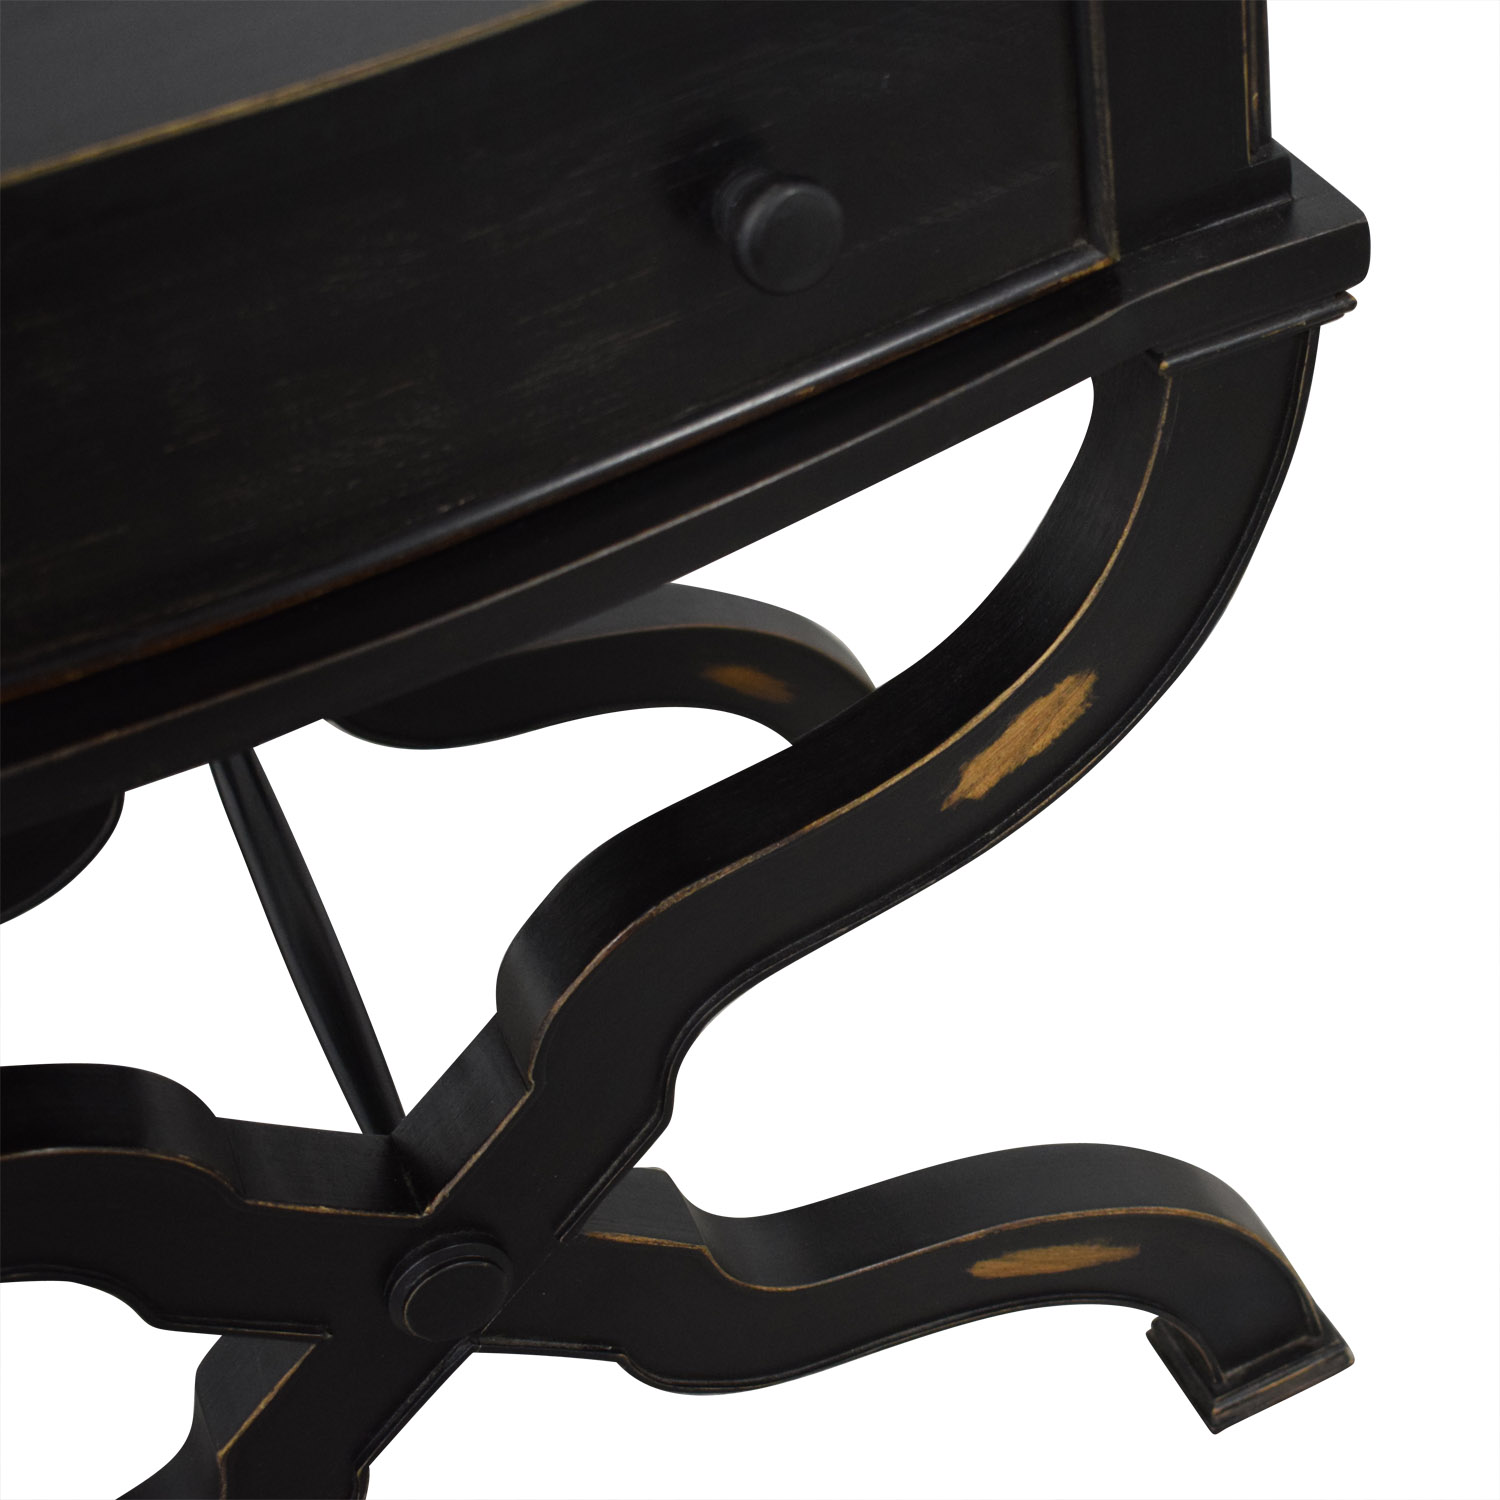 Nieman Marcus Distressed End Table / Tables